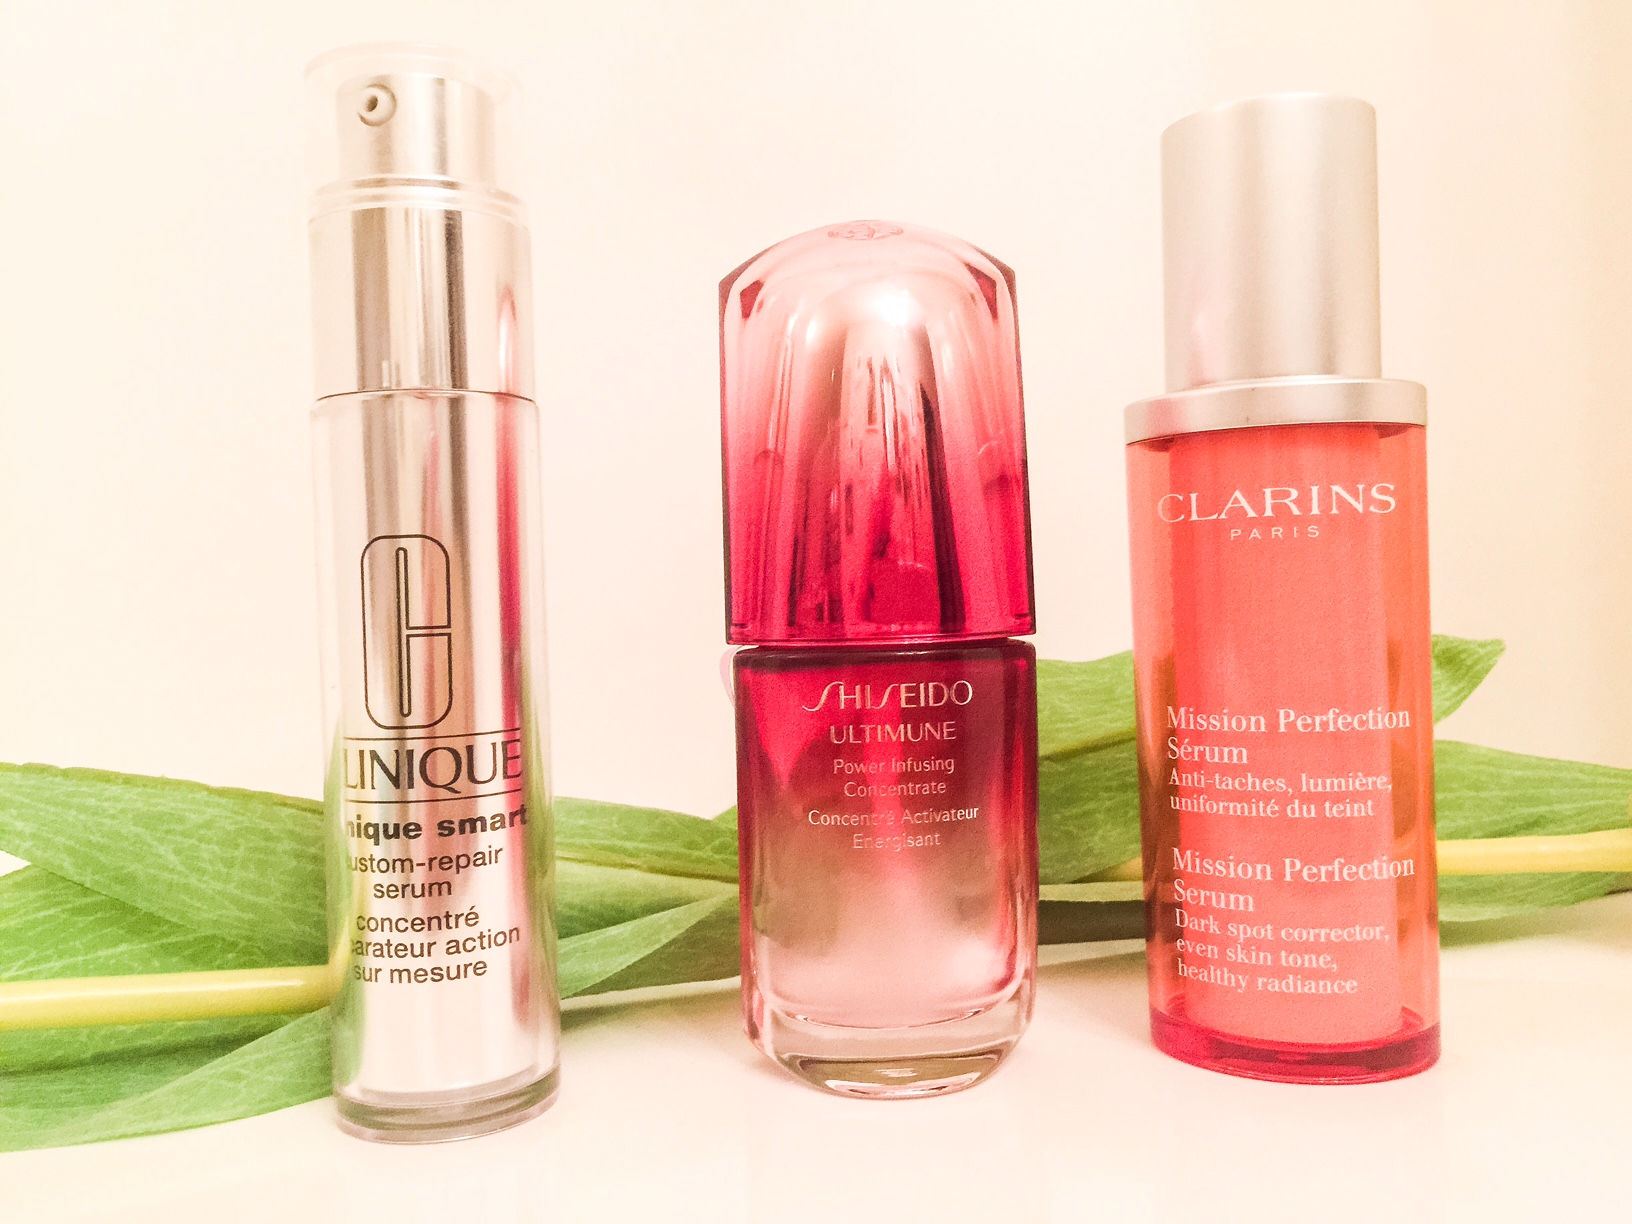 Mission Perfection Serum by Clarins #5